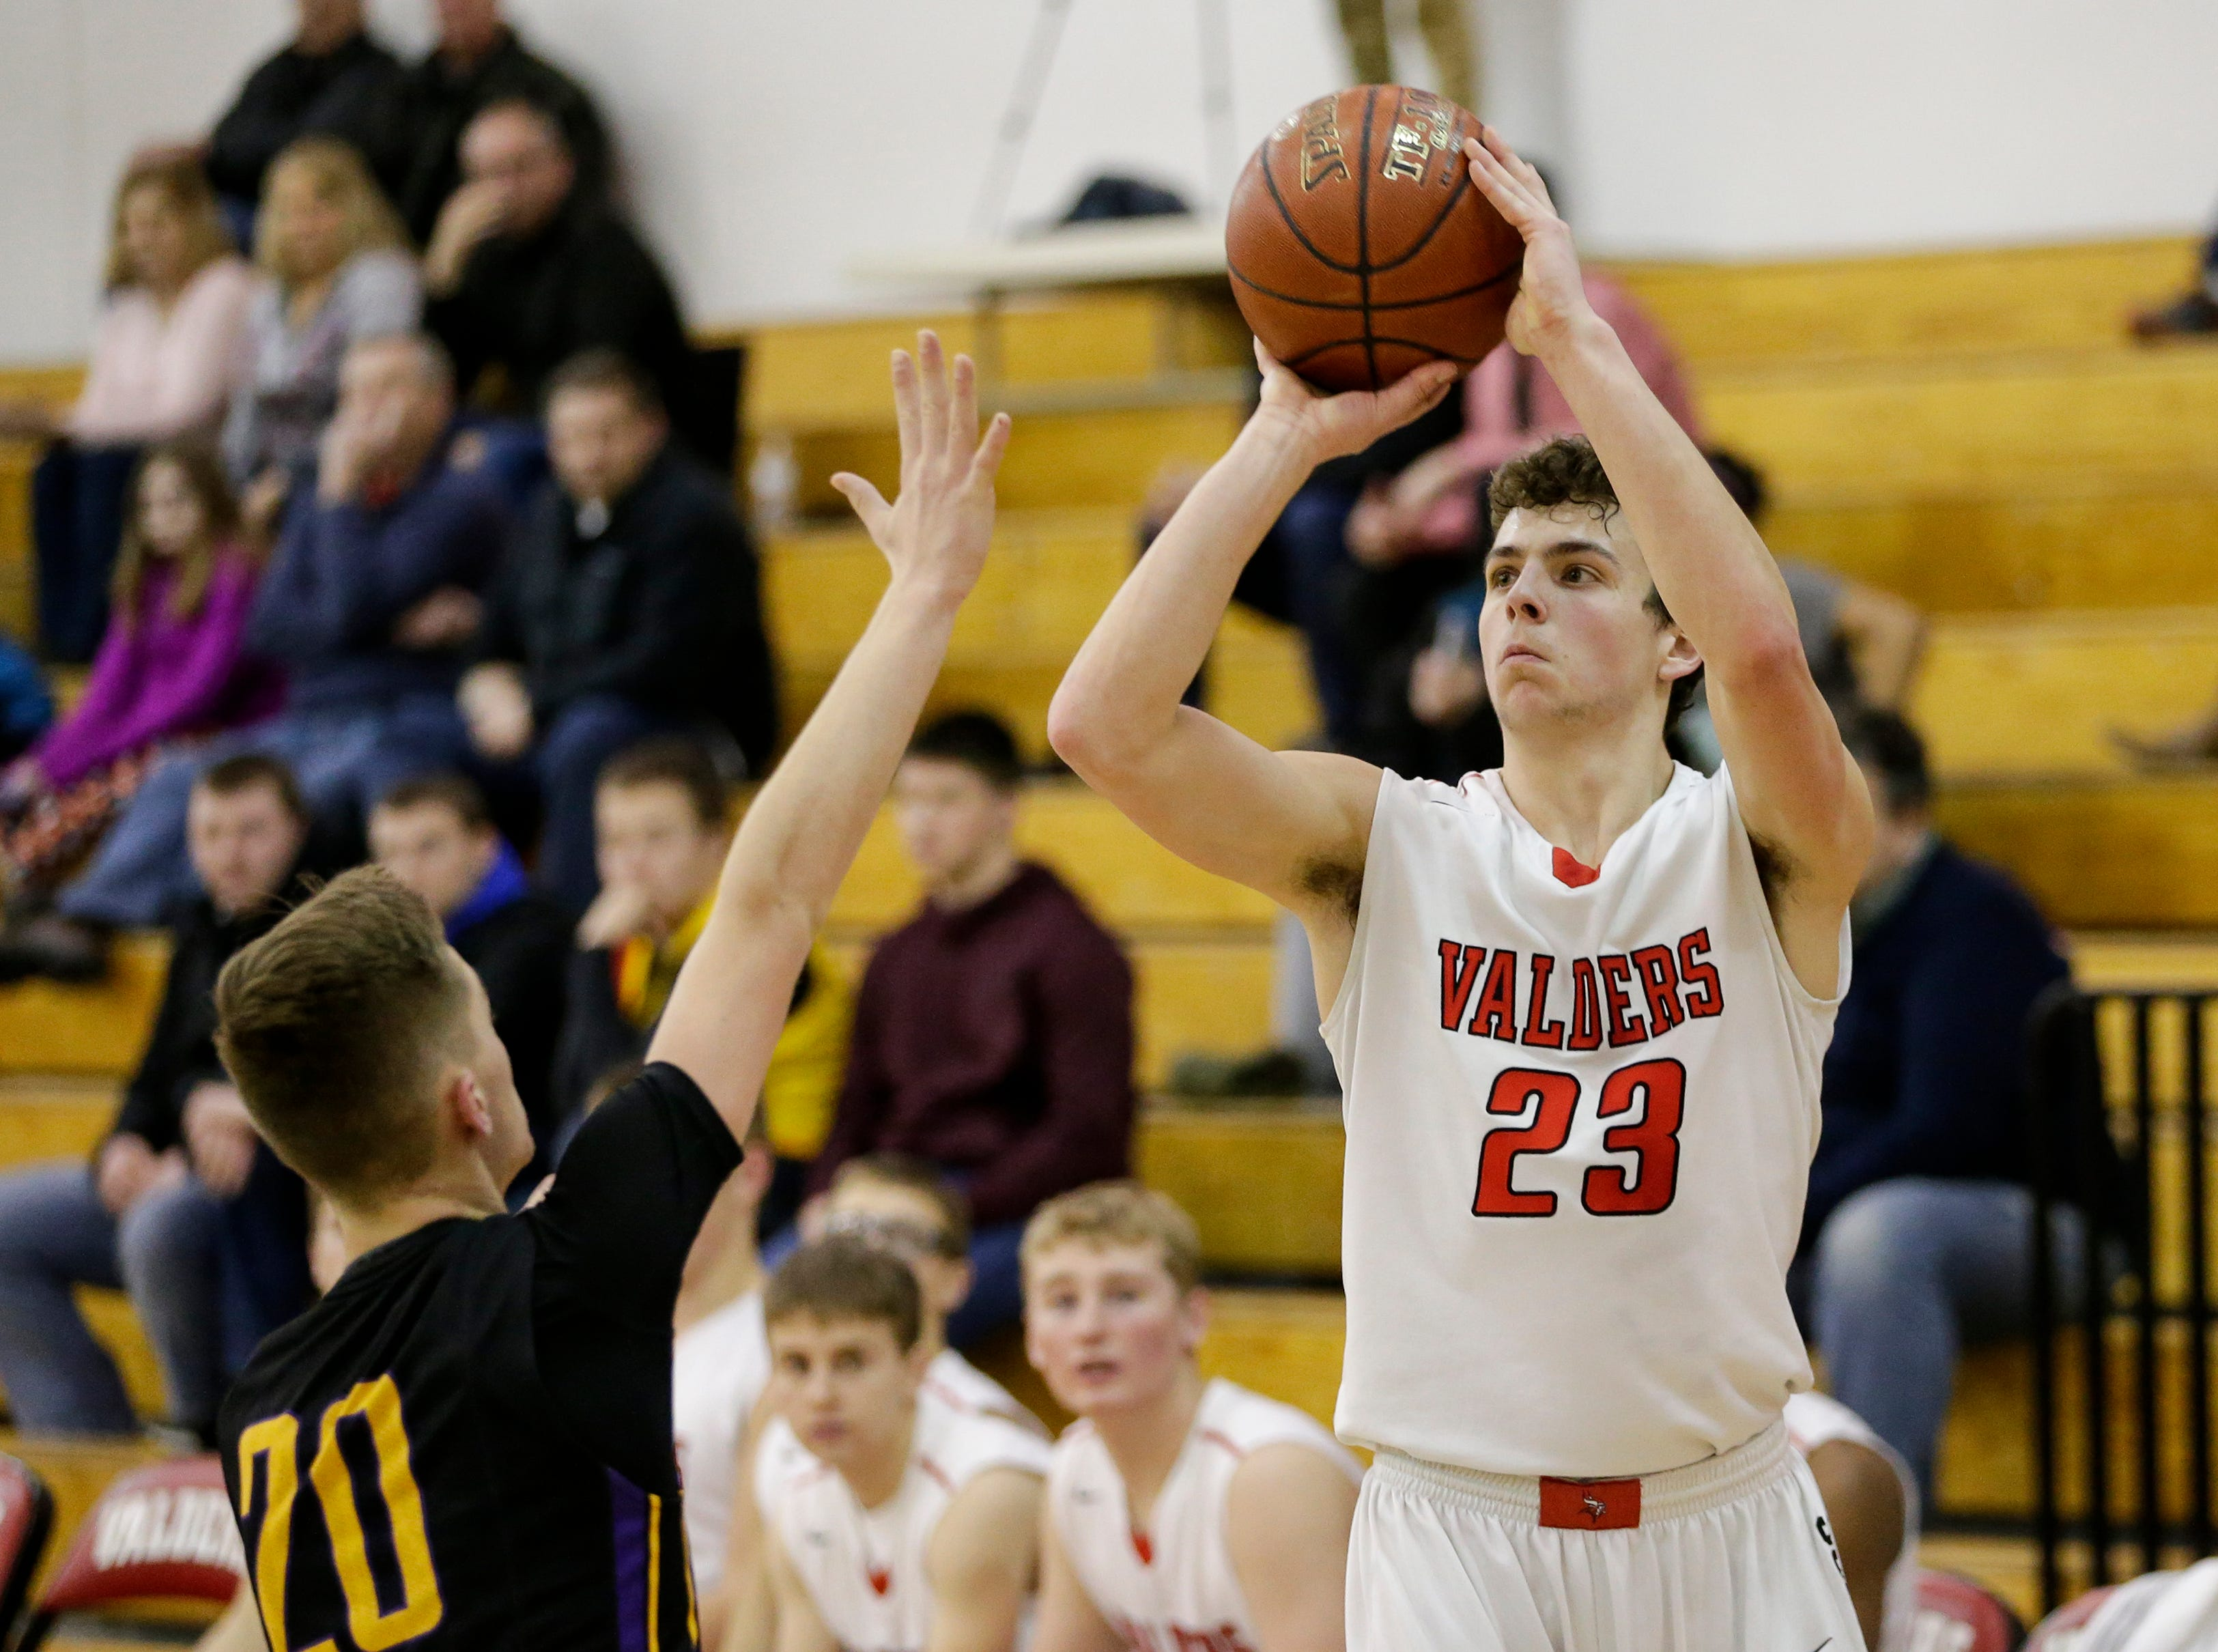 Valders' Reese Brown (23) shoots against Sheboygan Falls at Valders High School Friday, February 8, 2019, in Valders, Wis. Joshua Clark/USA TODAY NETWORK-Wisconsin